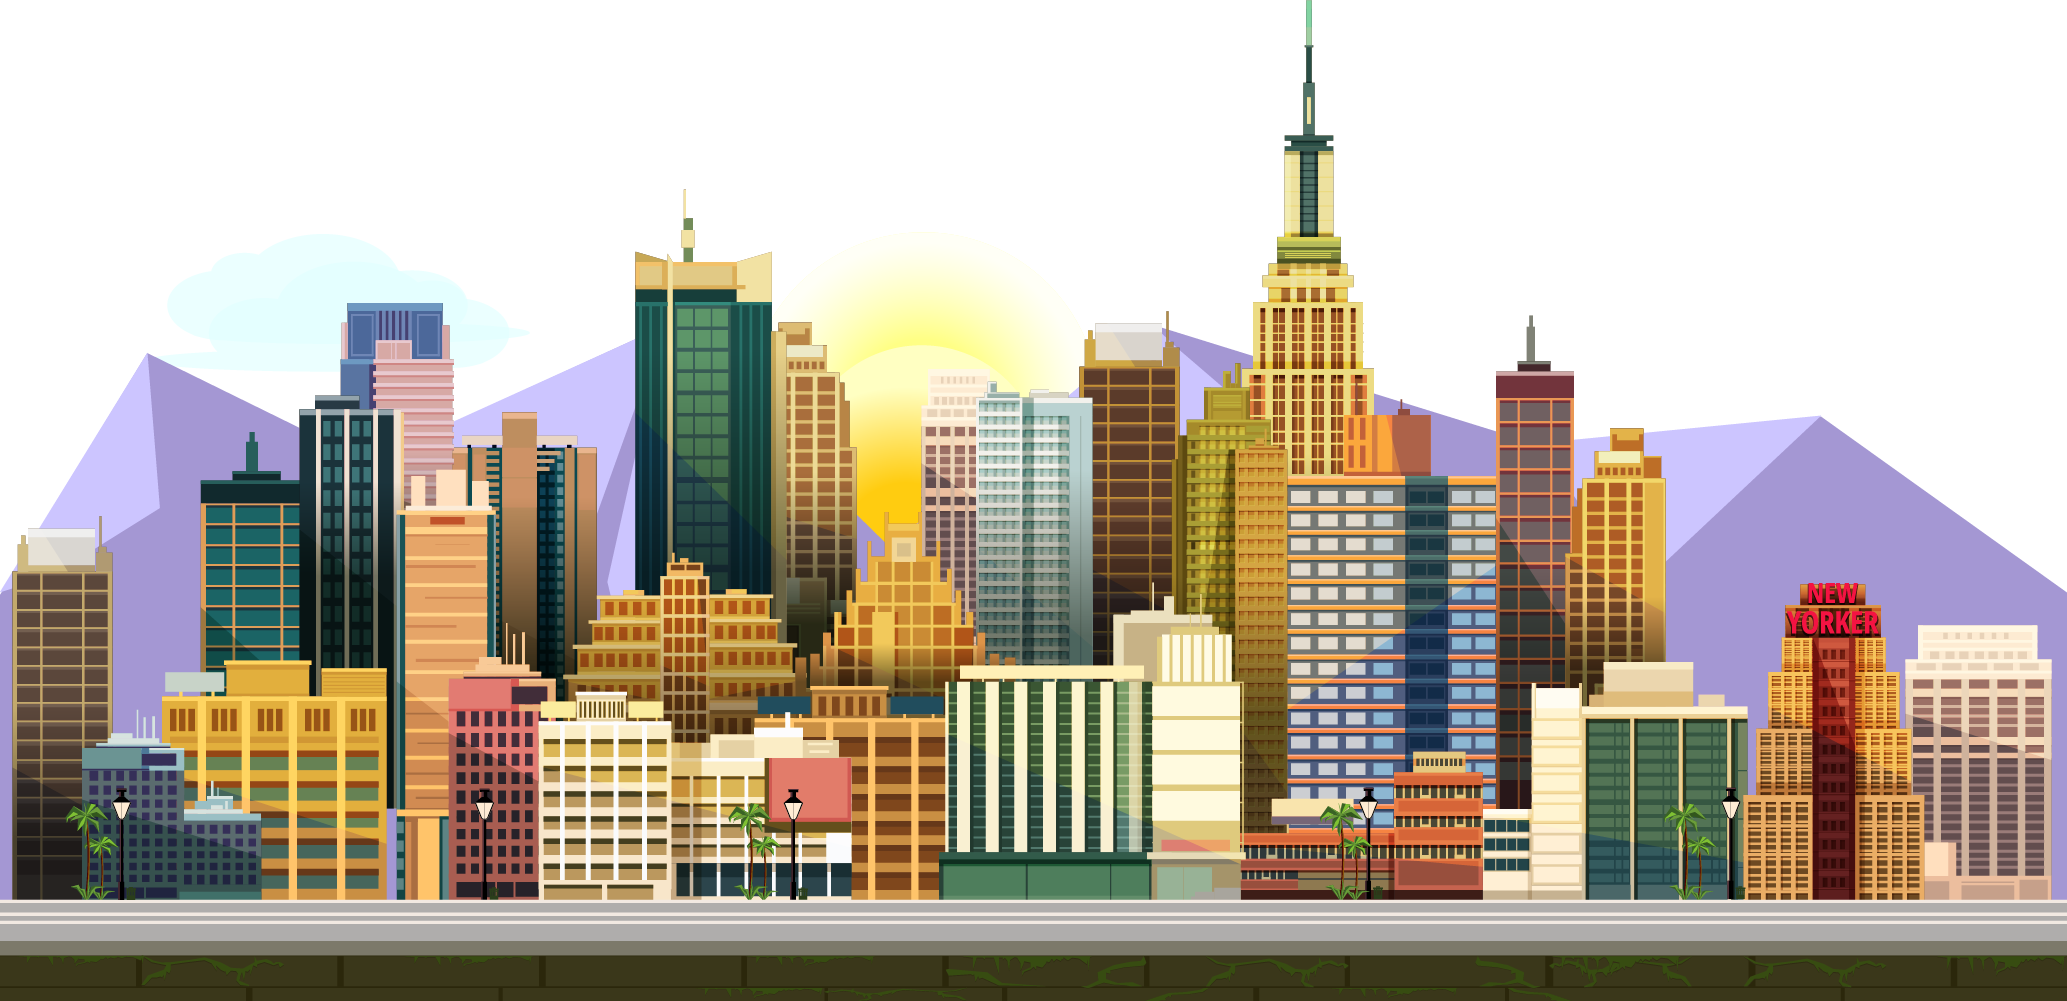 City clipart city landscape. Video game royalty free